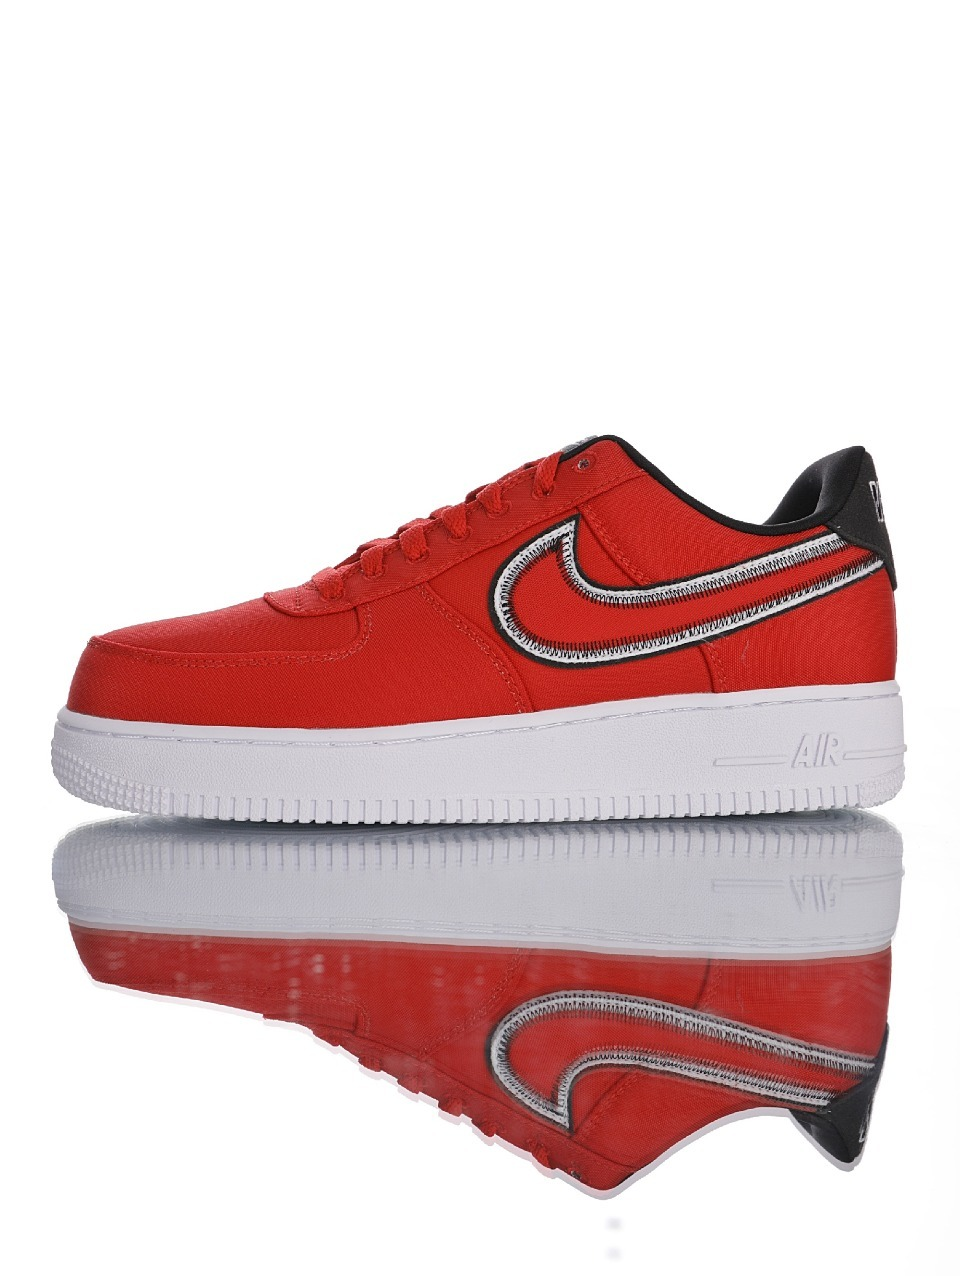 "耐克Nike Air Force 1 '07 LV8""University Red/Black White""AF1空军一号低帮经典百搭休闲运"